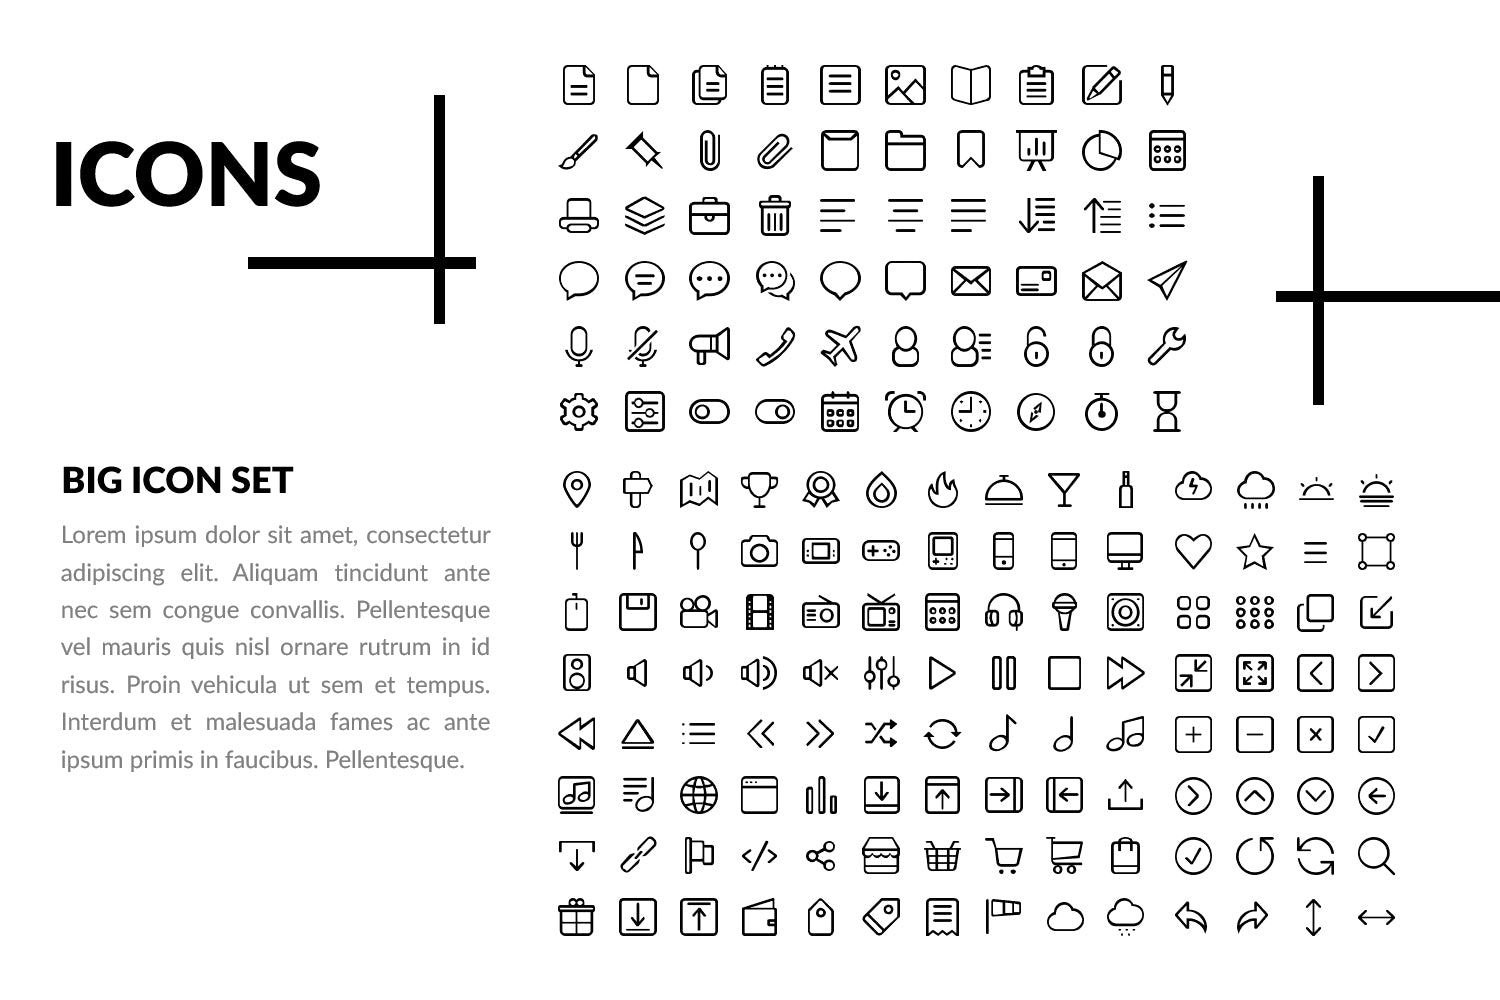 2000+ Icons Powerpoint, Free Vector Icons, Icon Set for Social Media, Business, Finance and your projects, instant download